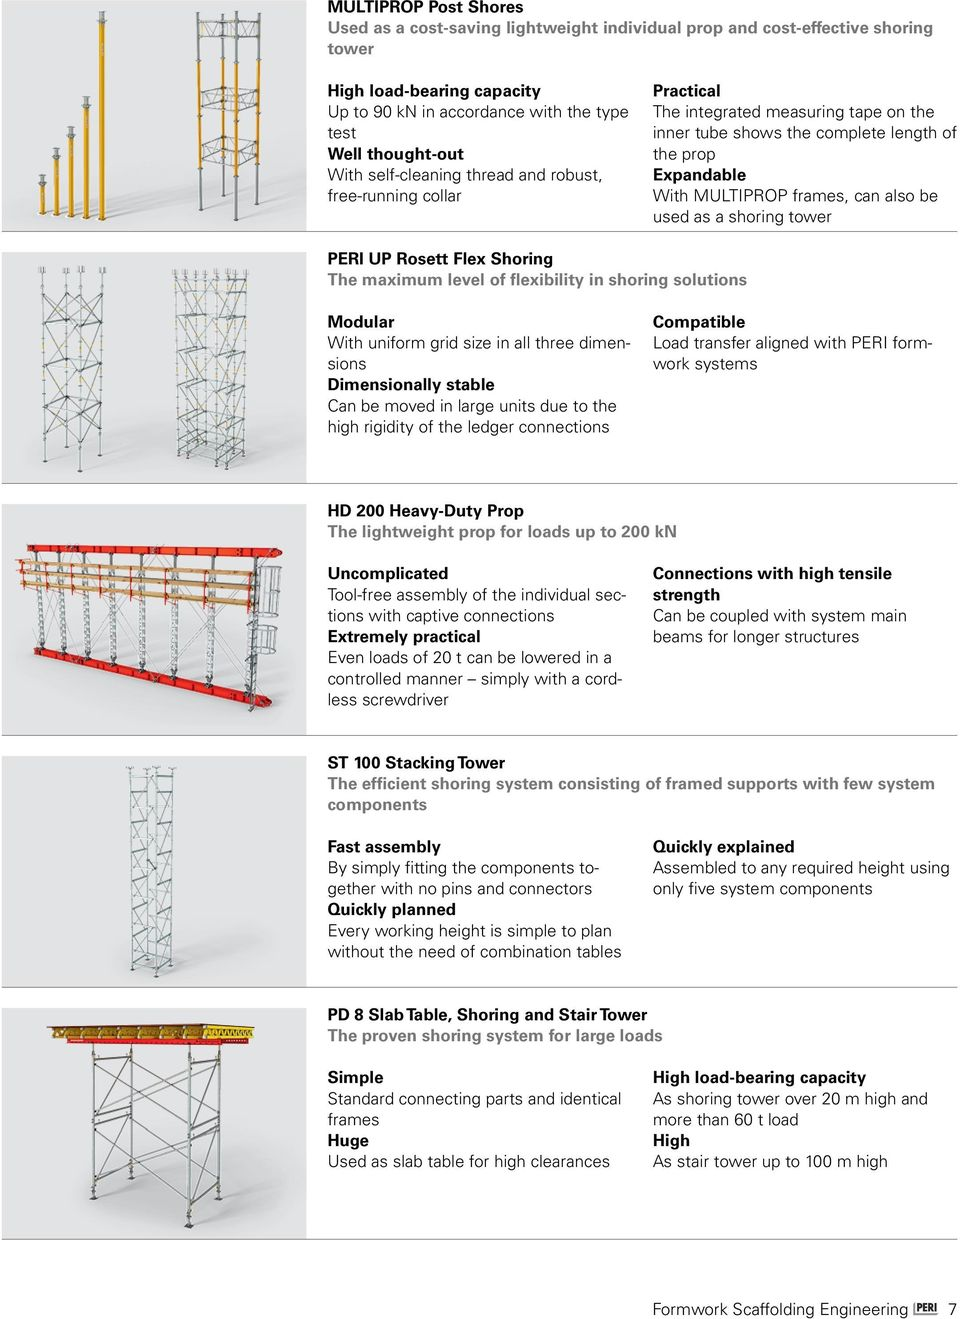 Formwork Scaffolding Engineering The most appropriate solution for